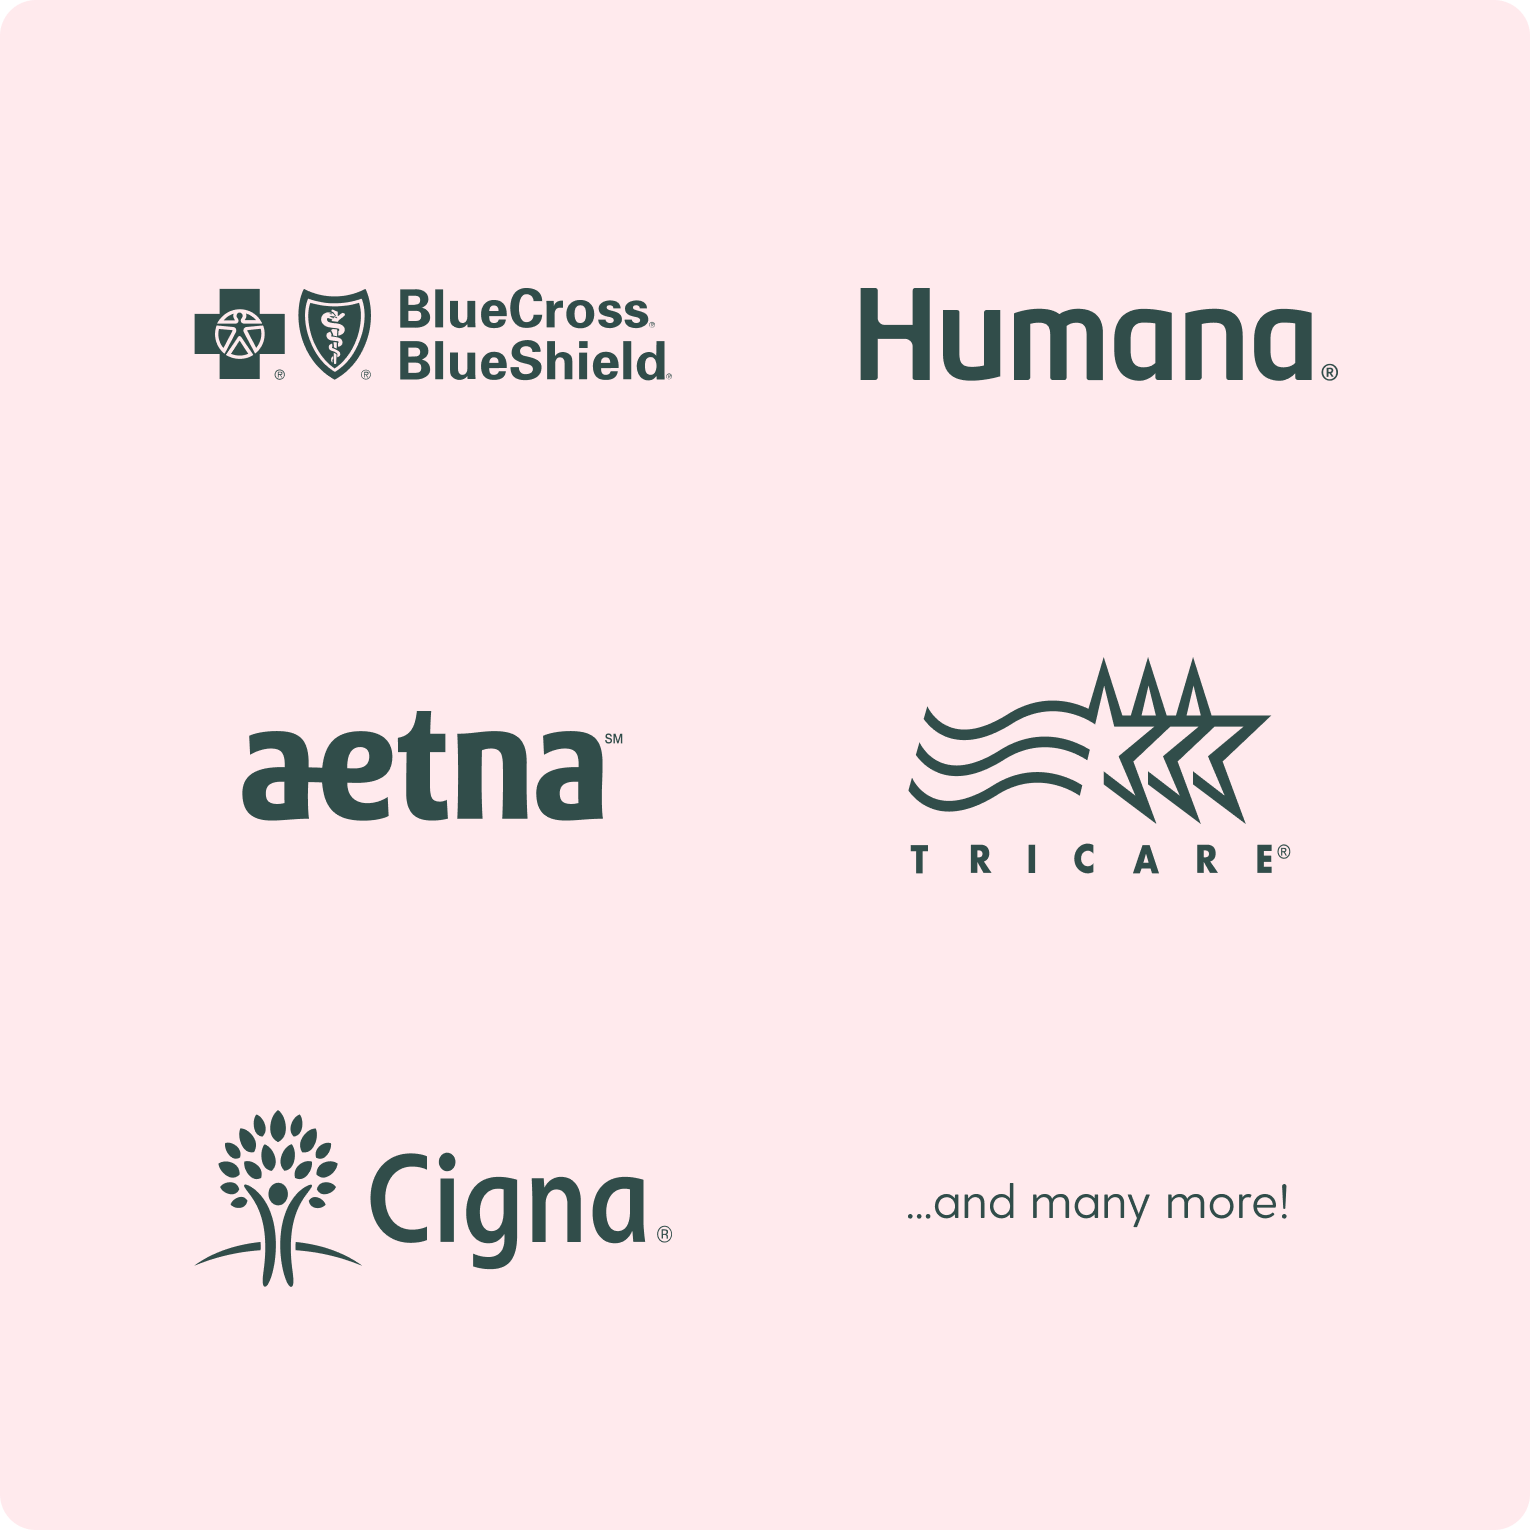 Image showing the logos of Blue Cross Blue Shield, Aetna, Cigna, Humana, Tricare insurance companies, and many more